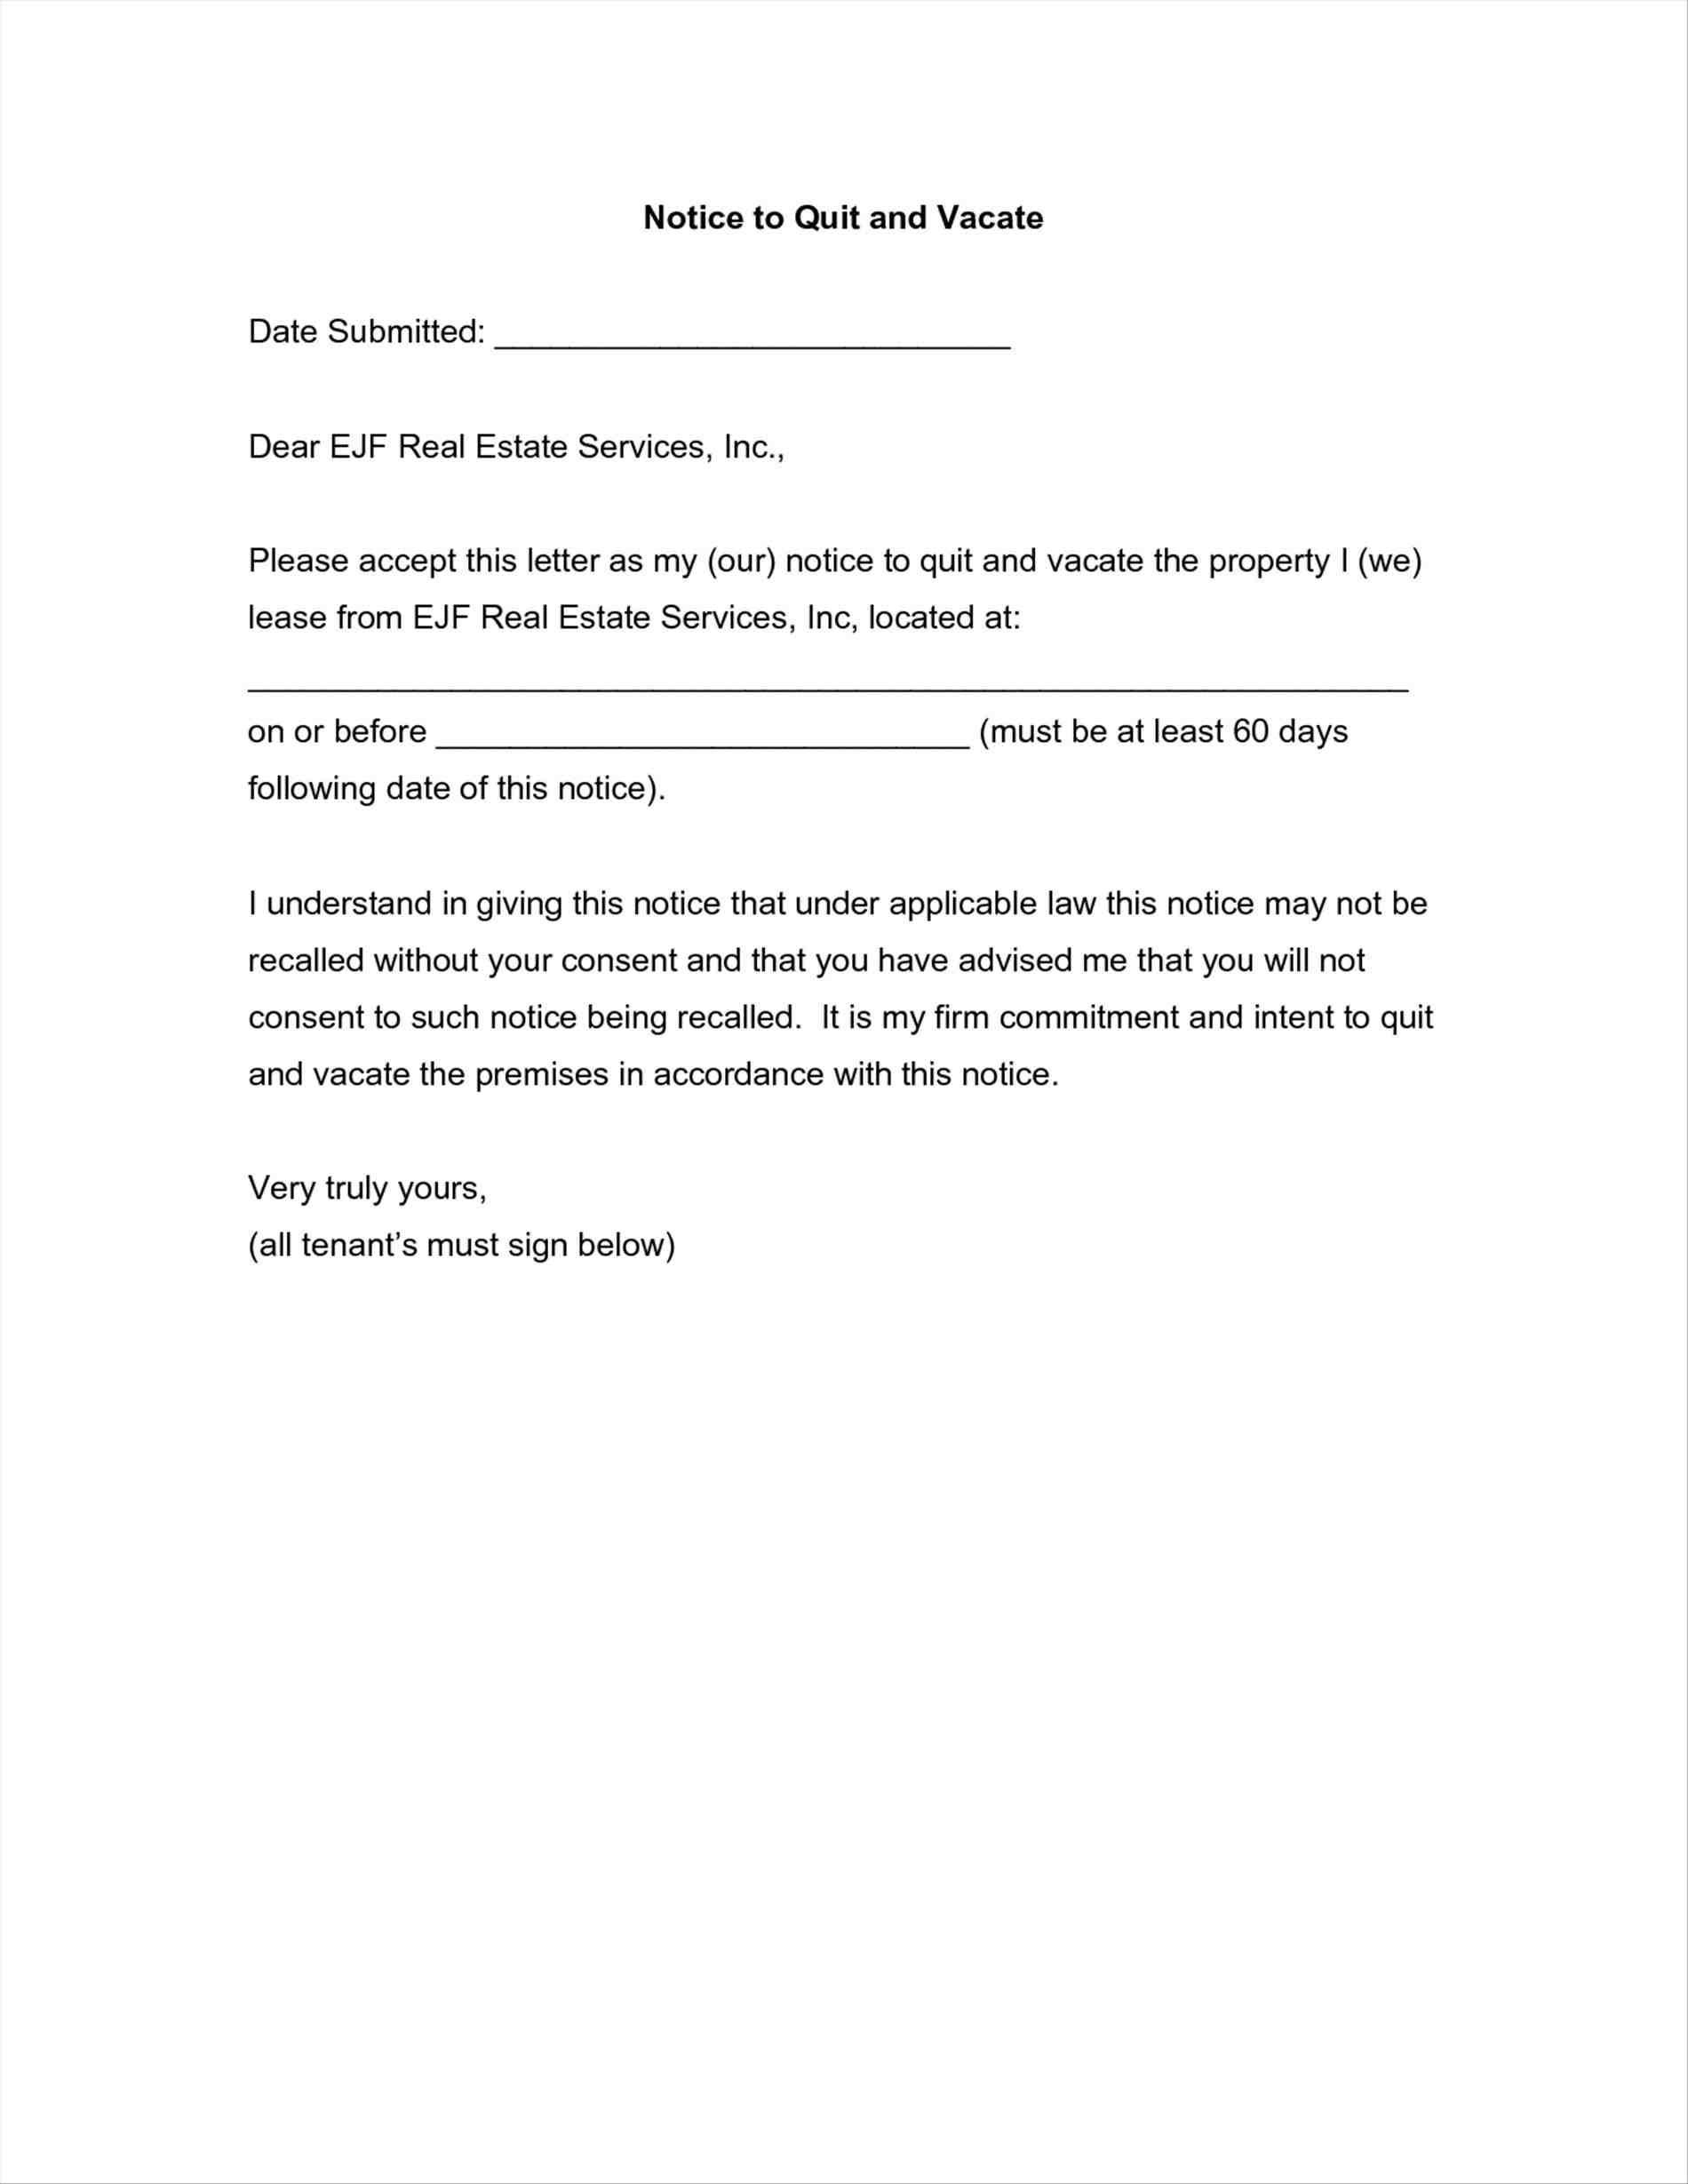 Apartment Offer Letter Template - Template for 60 Day Notice to Vacate